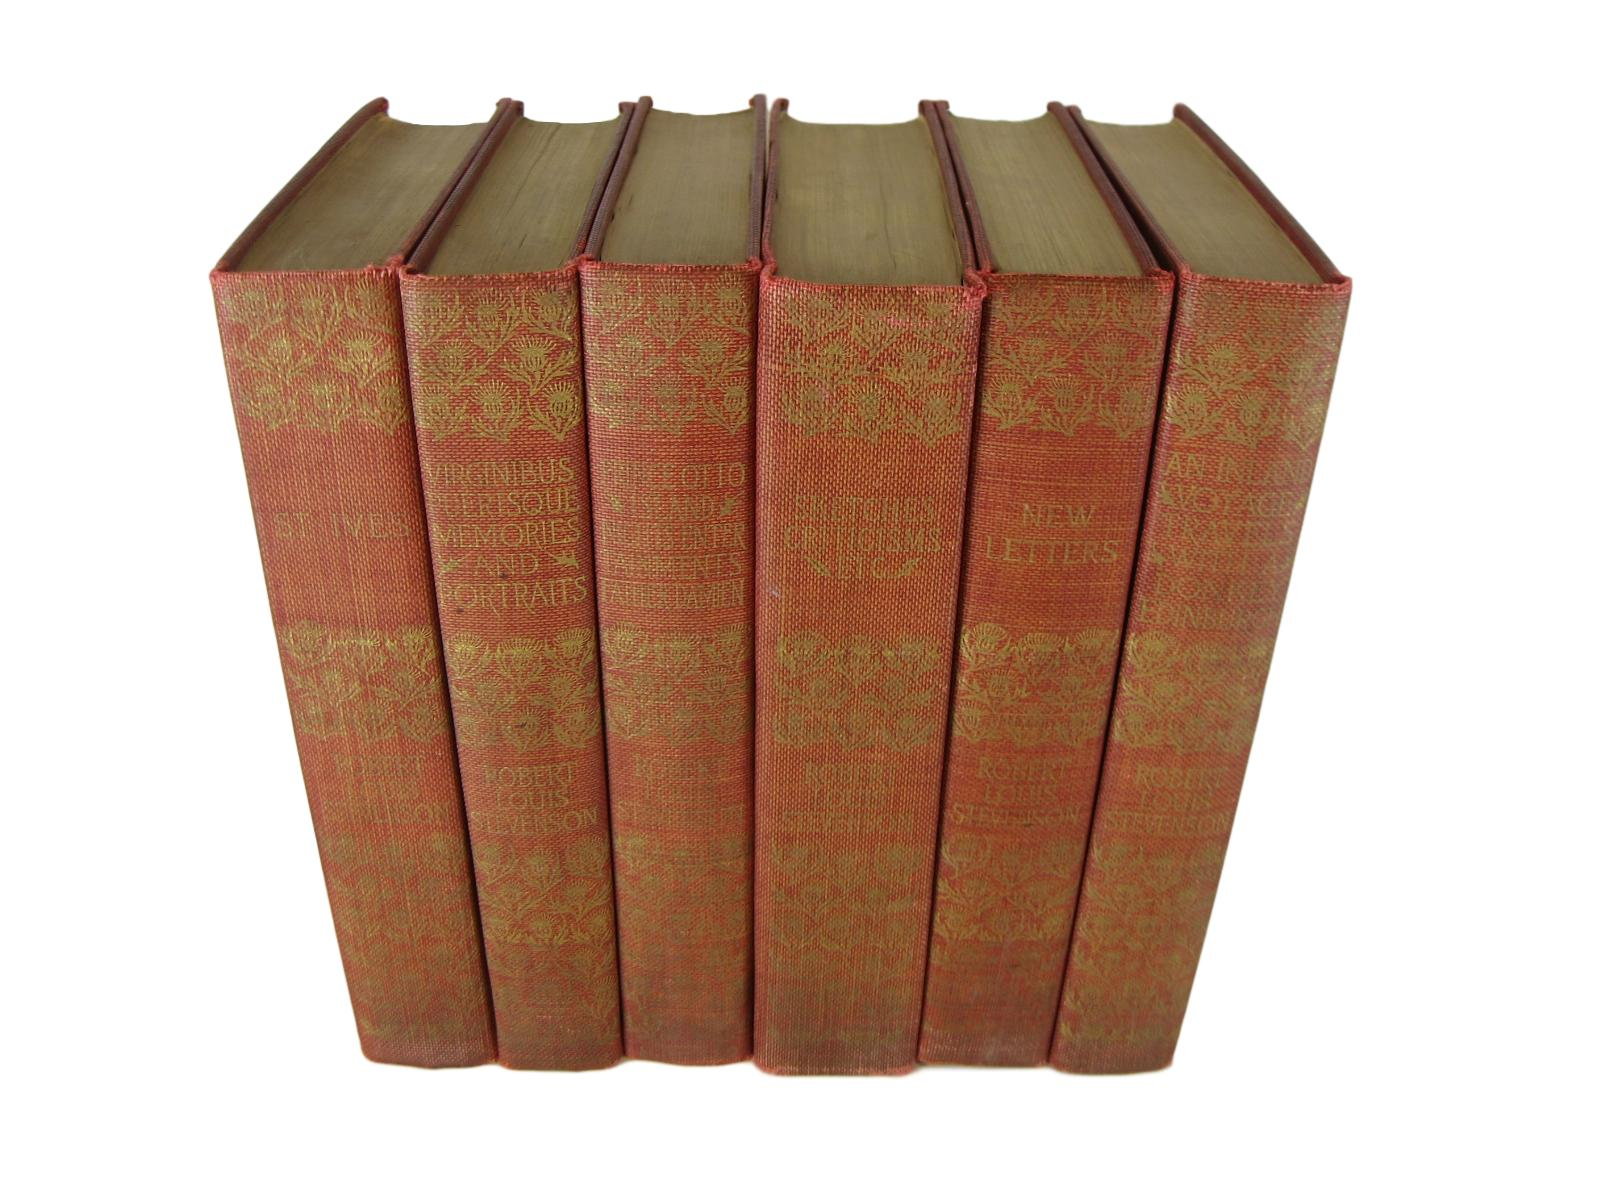 Antique Book Set by Robert Louis Stevenson for Rustic  Farmhouse Decor, S/6 - Decades of Vintage